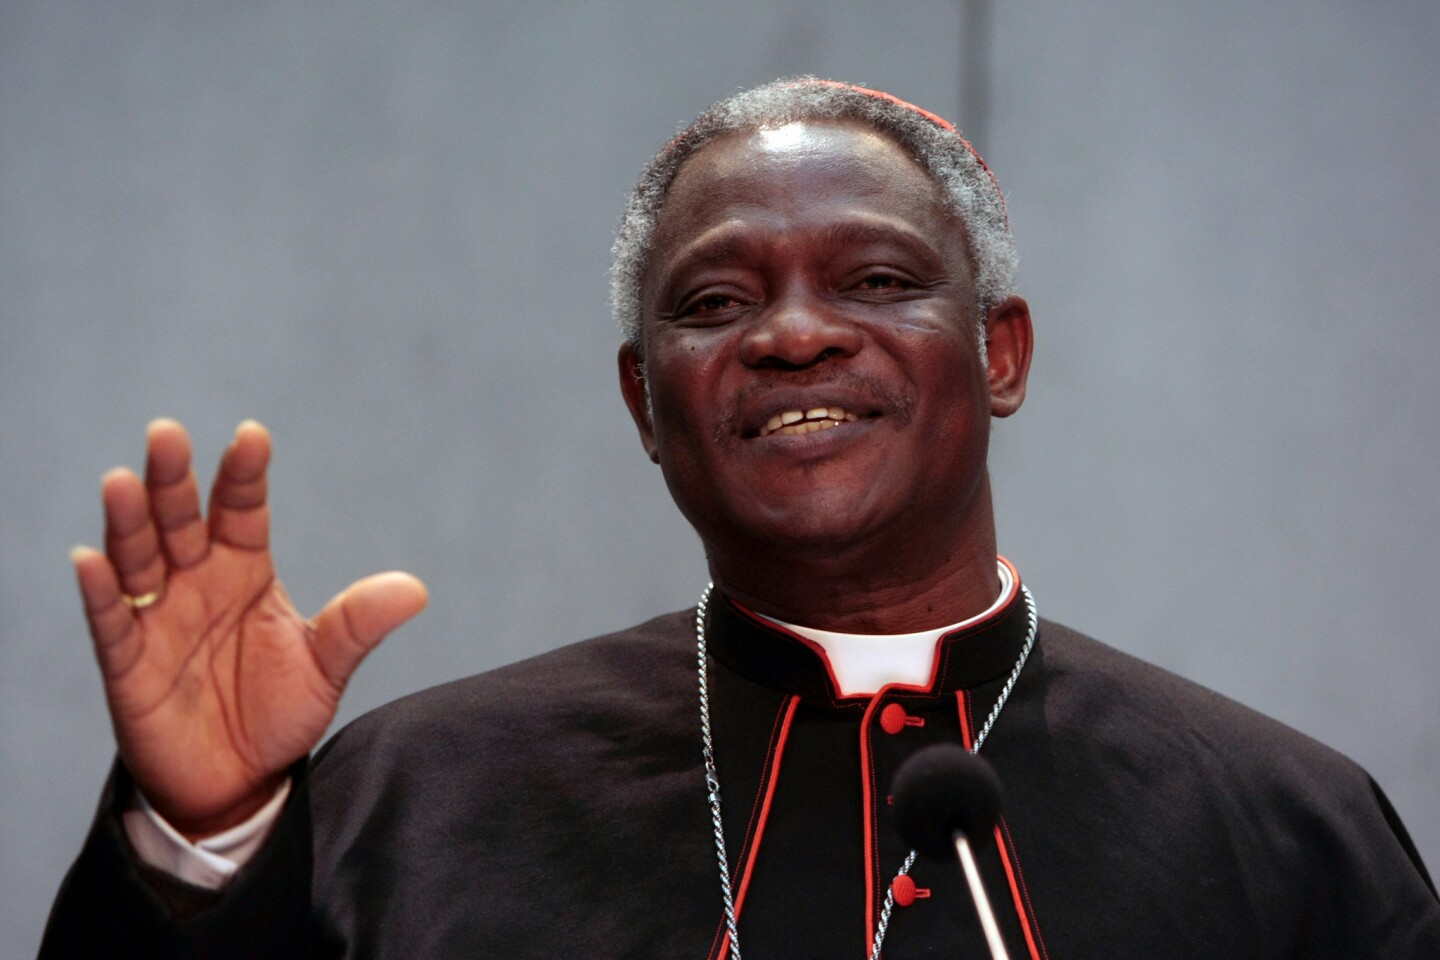 Peter Kodwo Appiah Turkson of Ghana is an African prelate seen as a top contender, and at 64 would be better positioned than older candidates to carry on the doctrine of John Paul II and Benedict XVI through what could be a time of growing Catholic influence in the developing world. Currently president of the Pontifical Council for Justice and Peace, Turkson has spent much of his career in religious academia. He has a doctorate in sacred scripture and has been a professor at St. Teresa's Seminary in his home country as well as vice rector at St. Peter's Seminary. His negative views on the merits of using condoms to prevent the spread of HIV/AIDS, though, have alienated reformists within the church. In 2009, he reaffirmed the church's position against contraception, urging abstinence and fidelity instead.